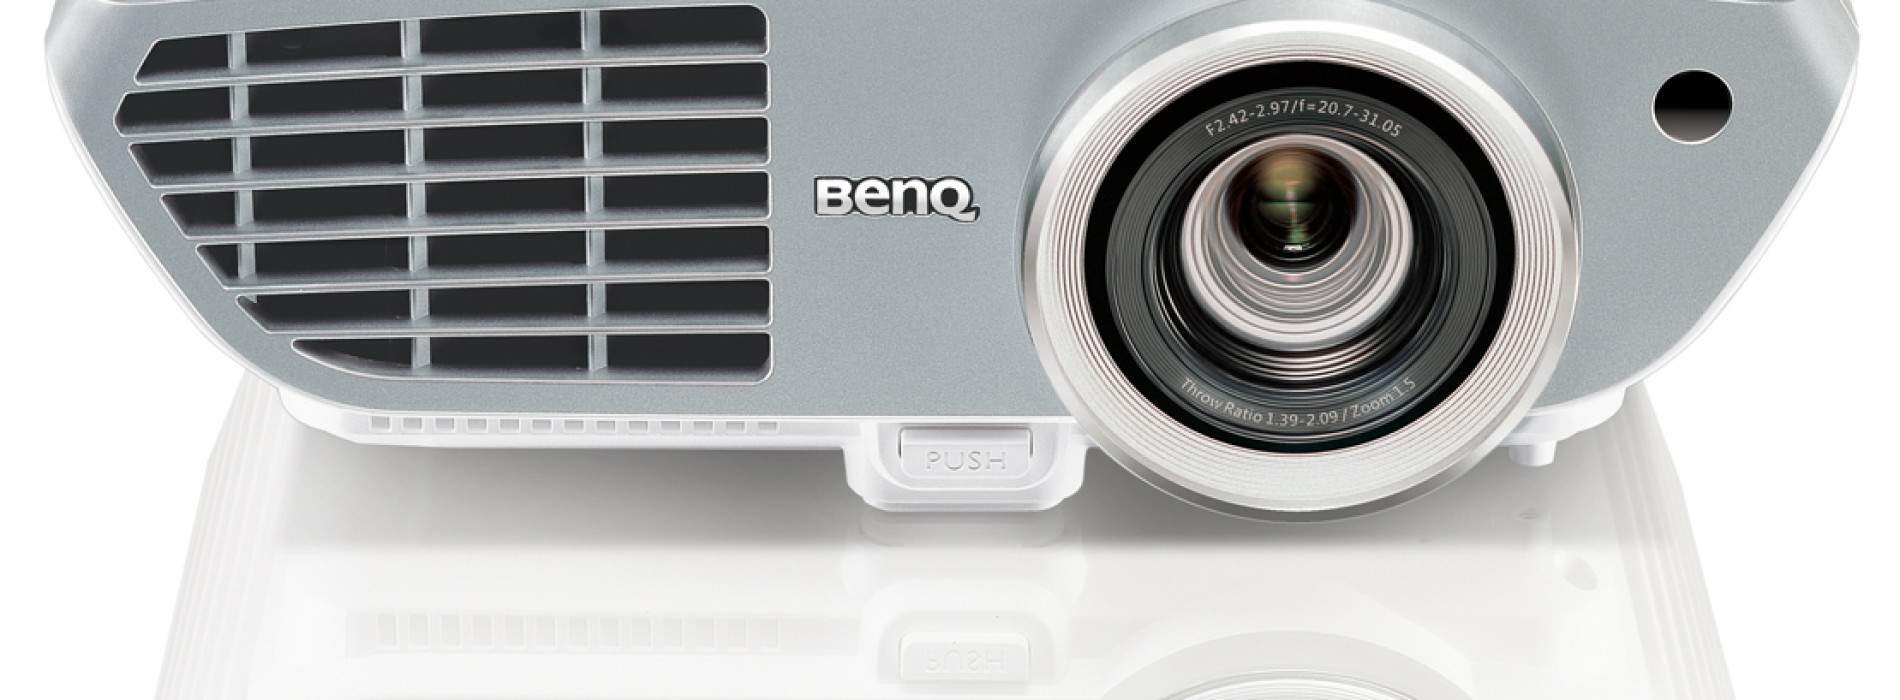 BenQ W1350: Proyector Home Cinema Full HD para casa. Review en español